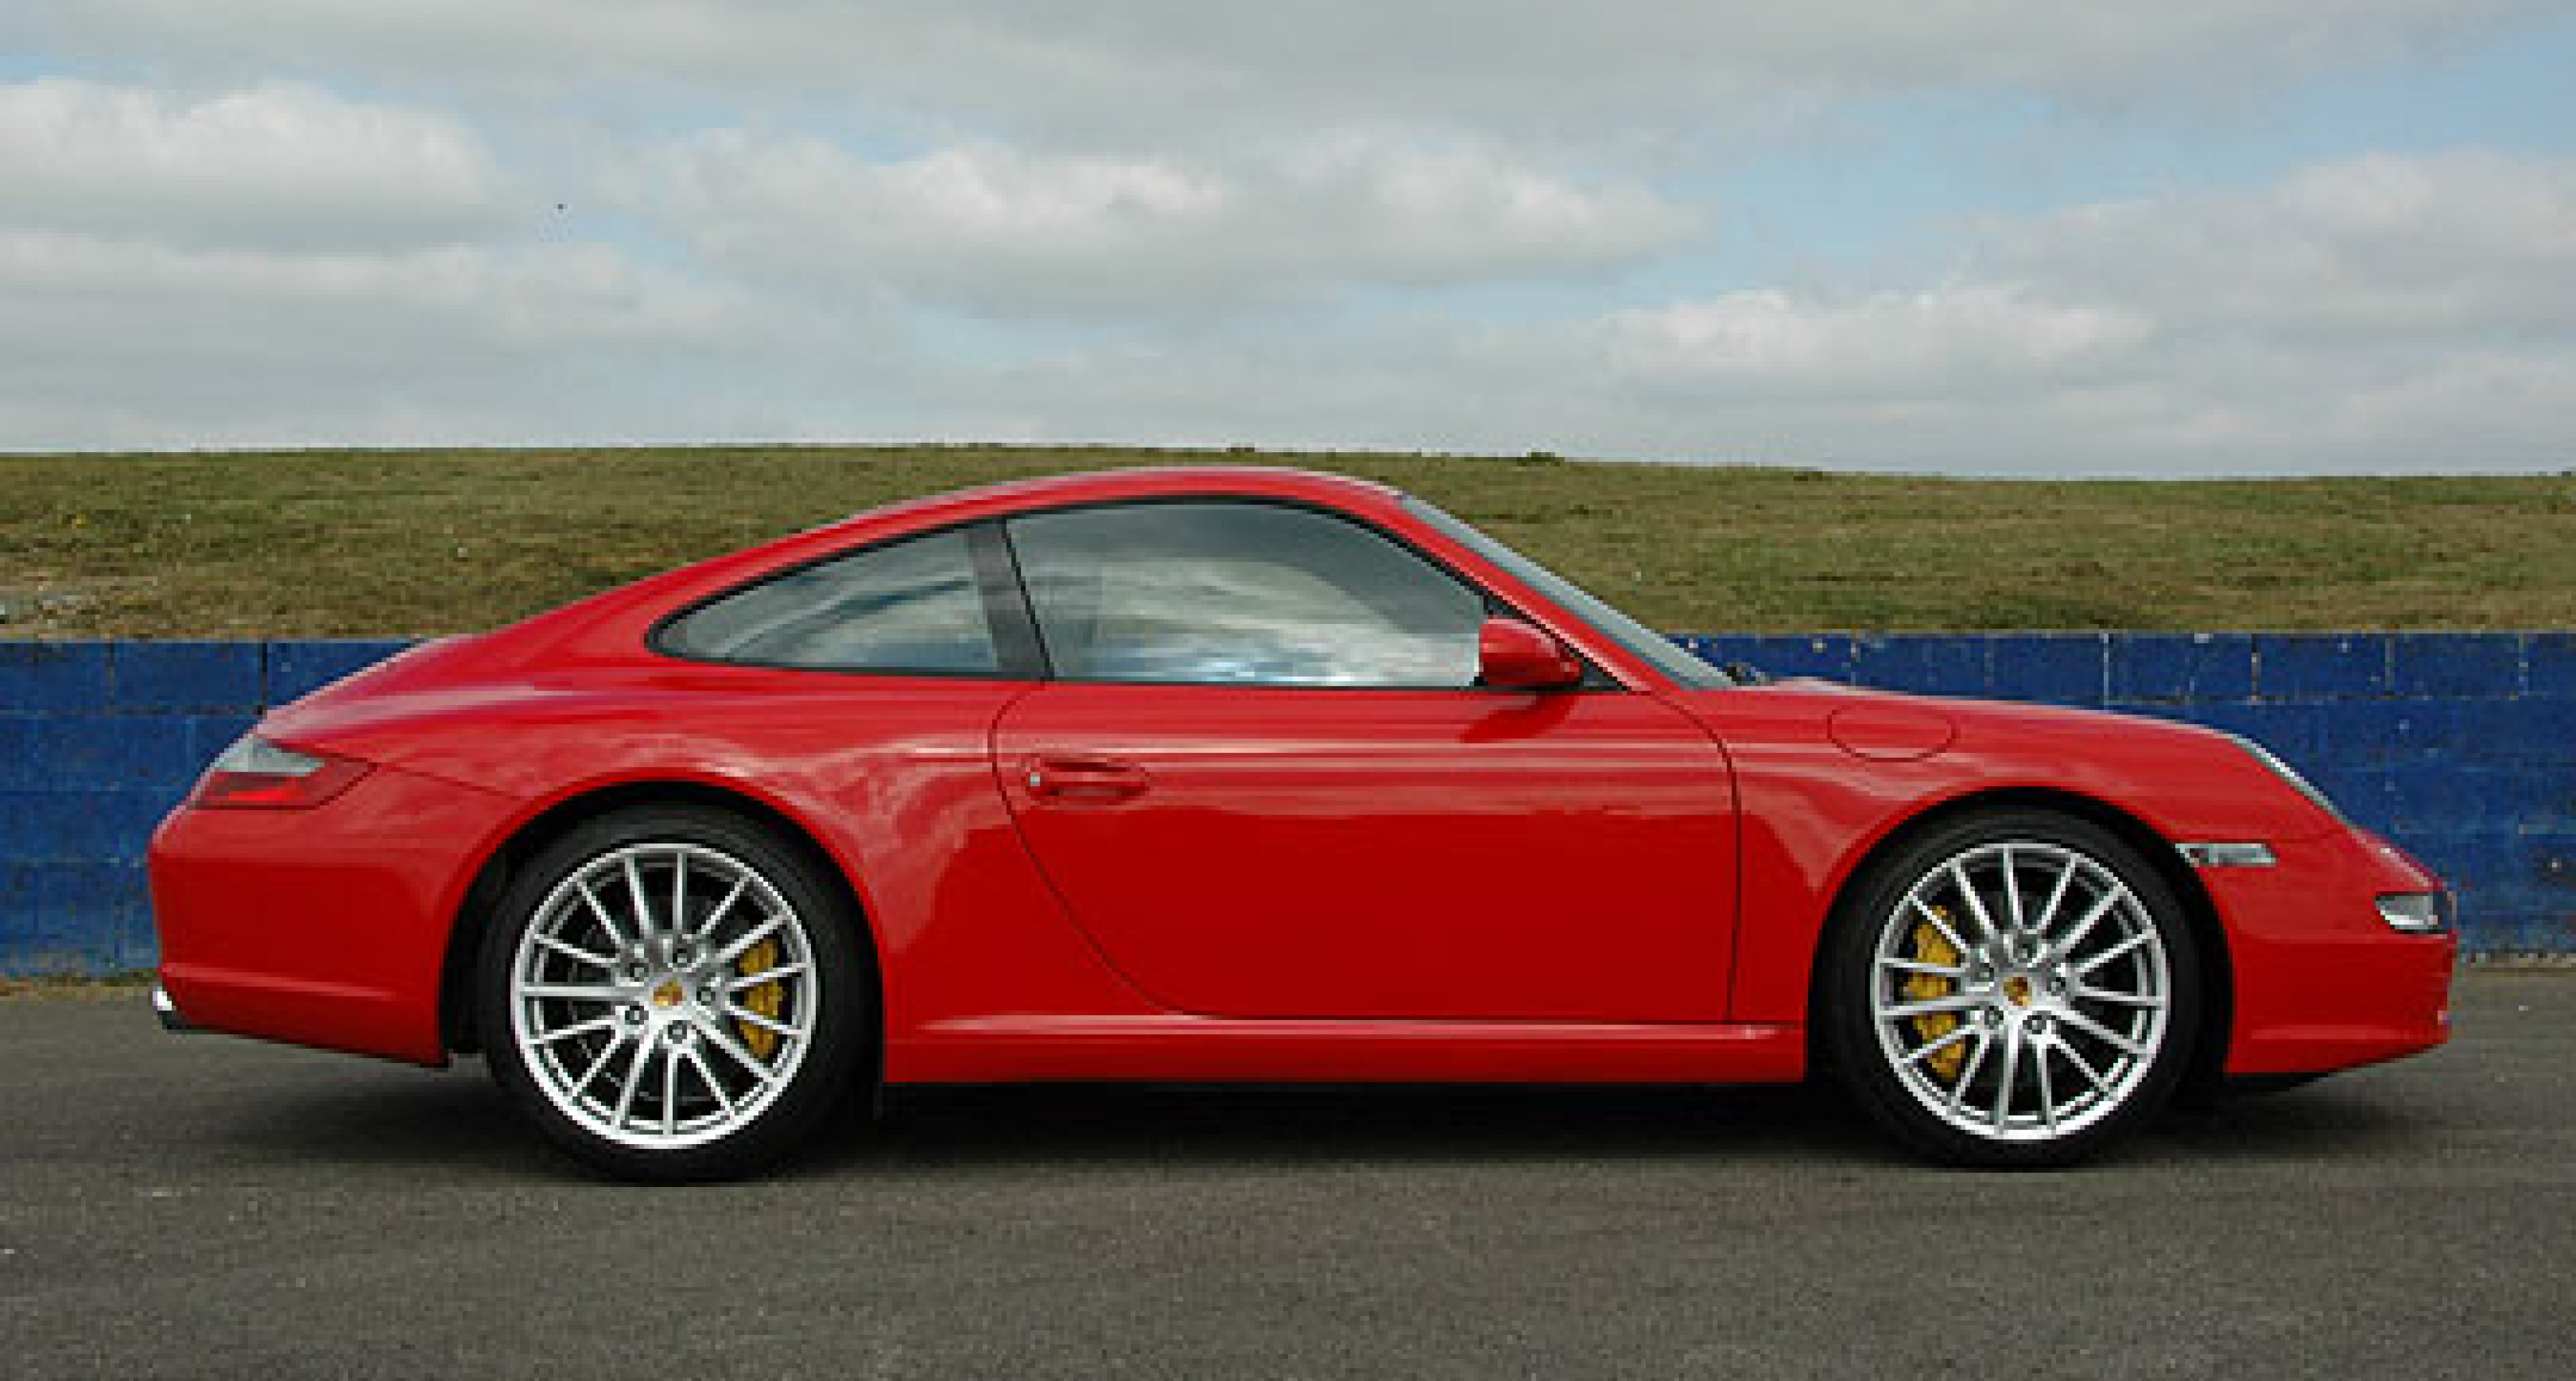 Driving the 2007 Supercar Tour in a Porsche 911 Carrera